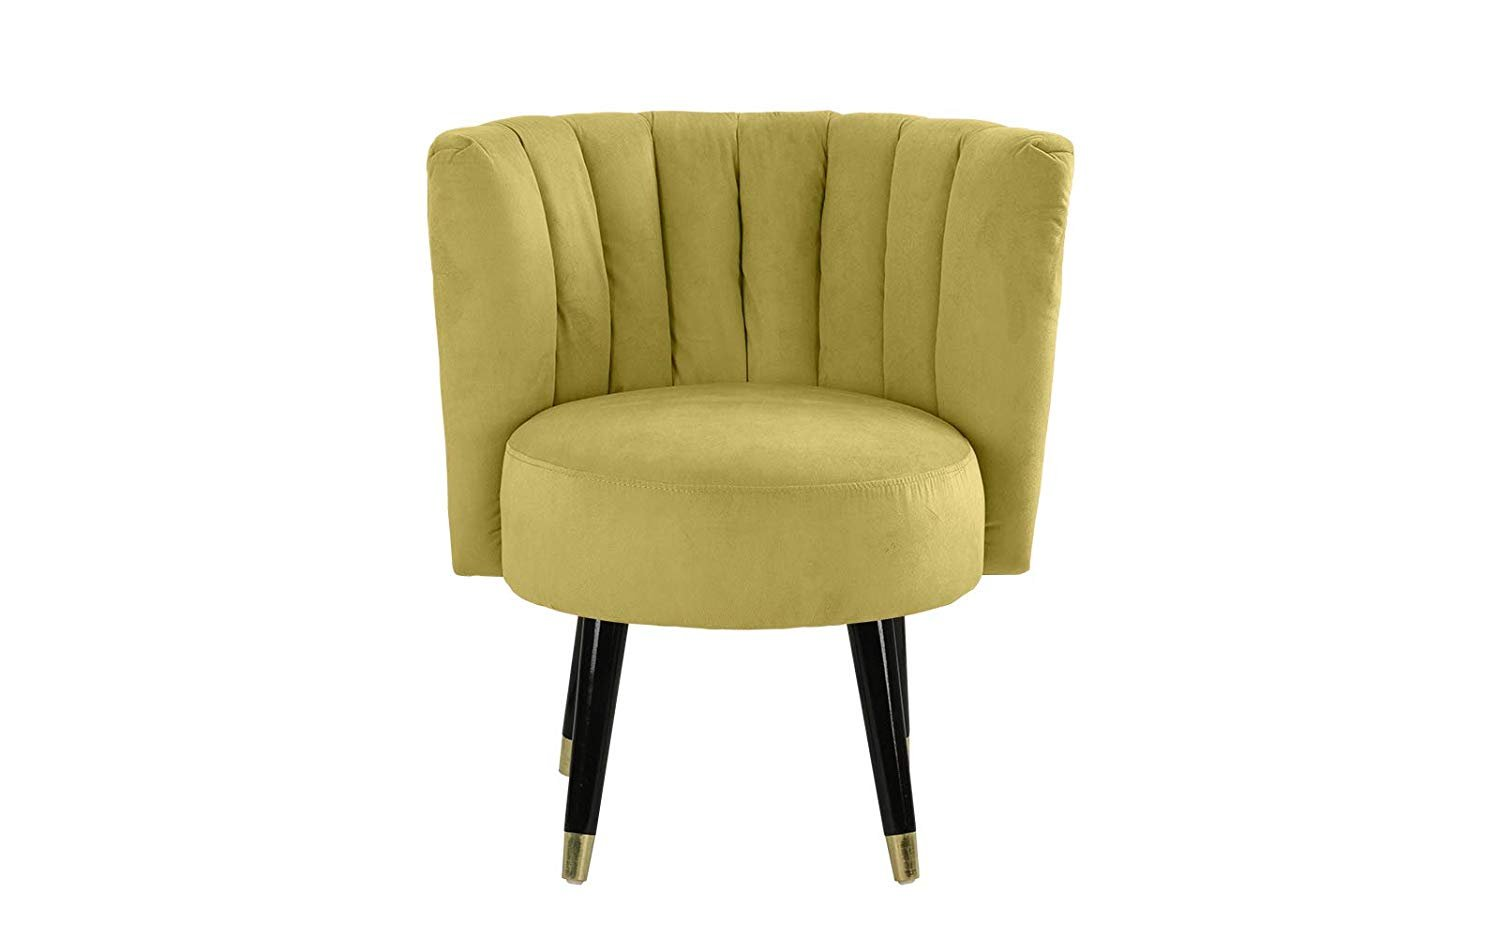 Details About Classic Velvet Living Room Chair Round Accent Chair Pleated Backrest Green